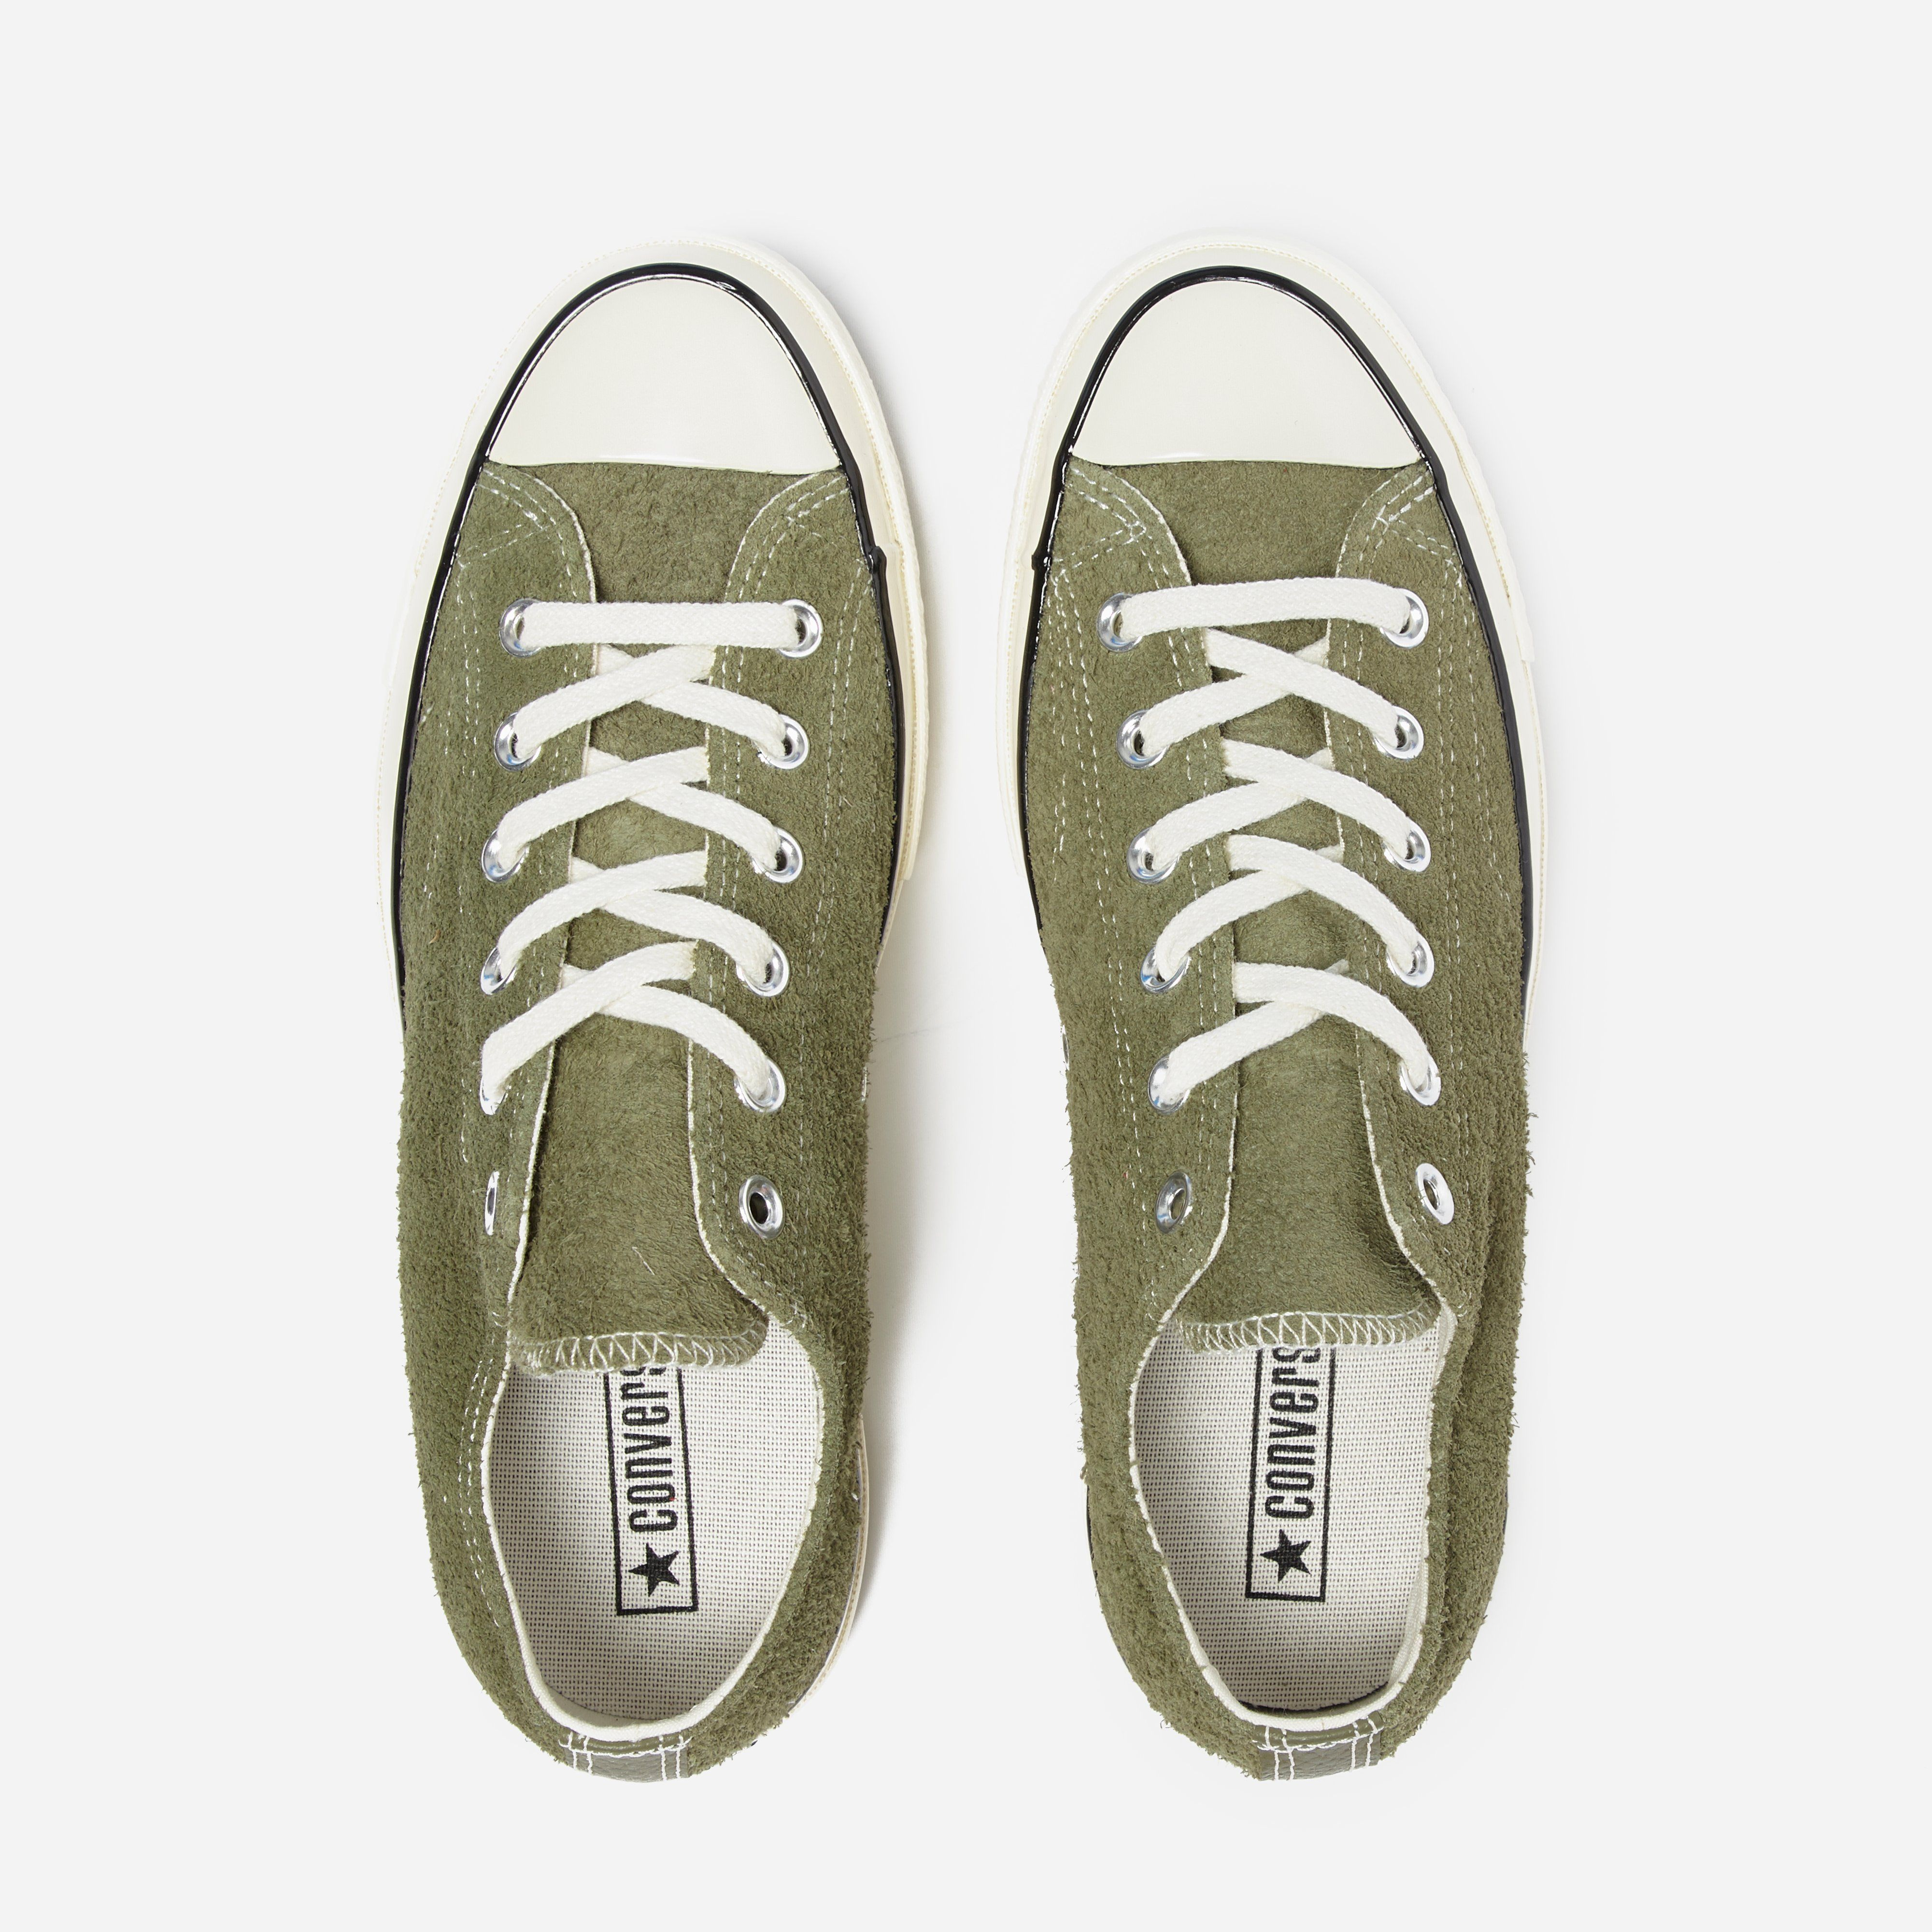 Converse Chuck Taylor All Star 1970 Ox Suede